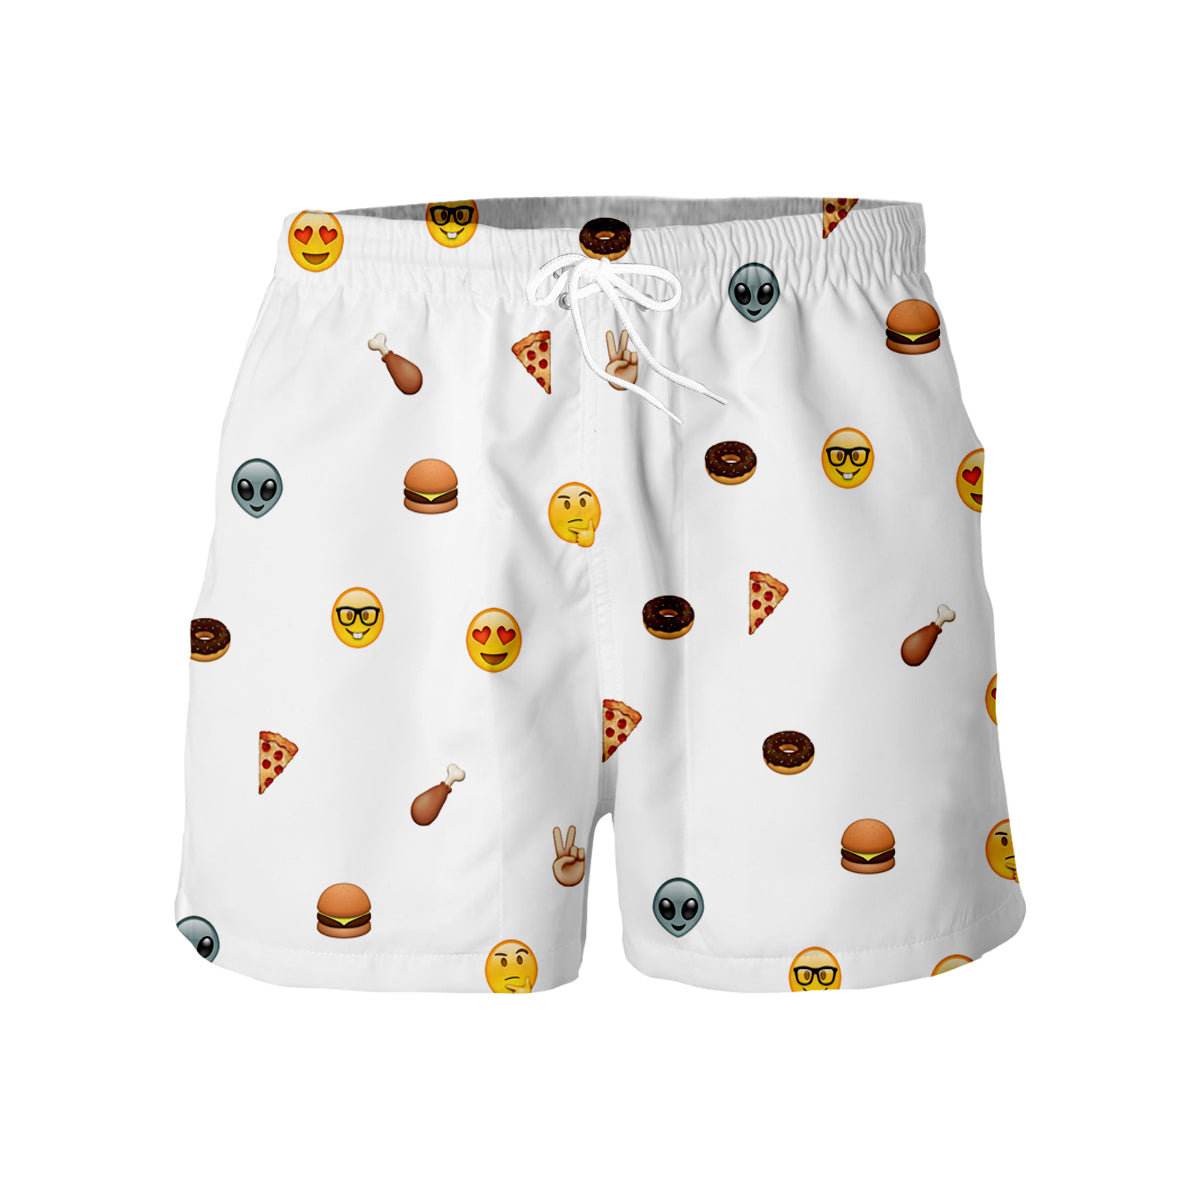 All Emojis Shorts